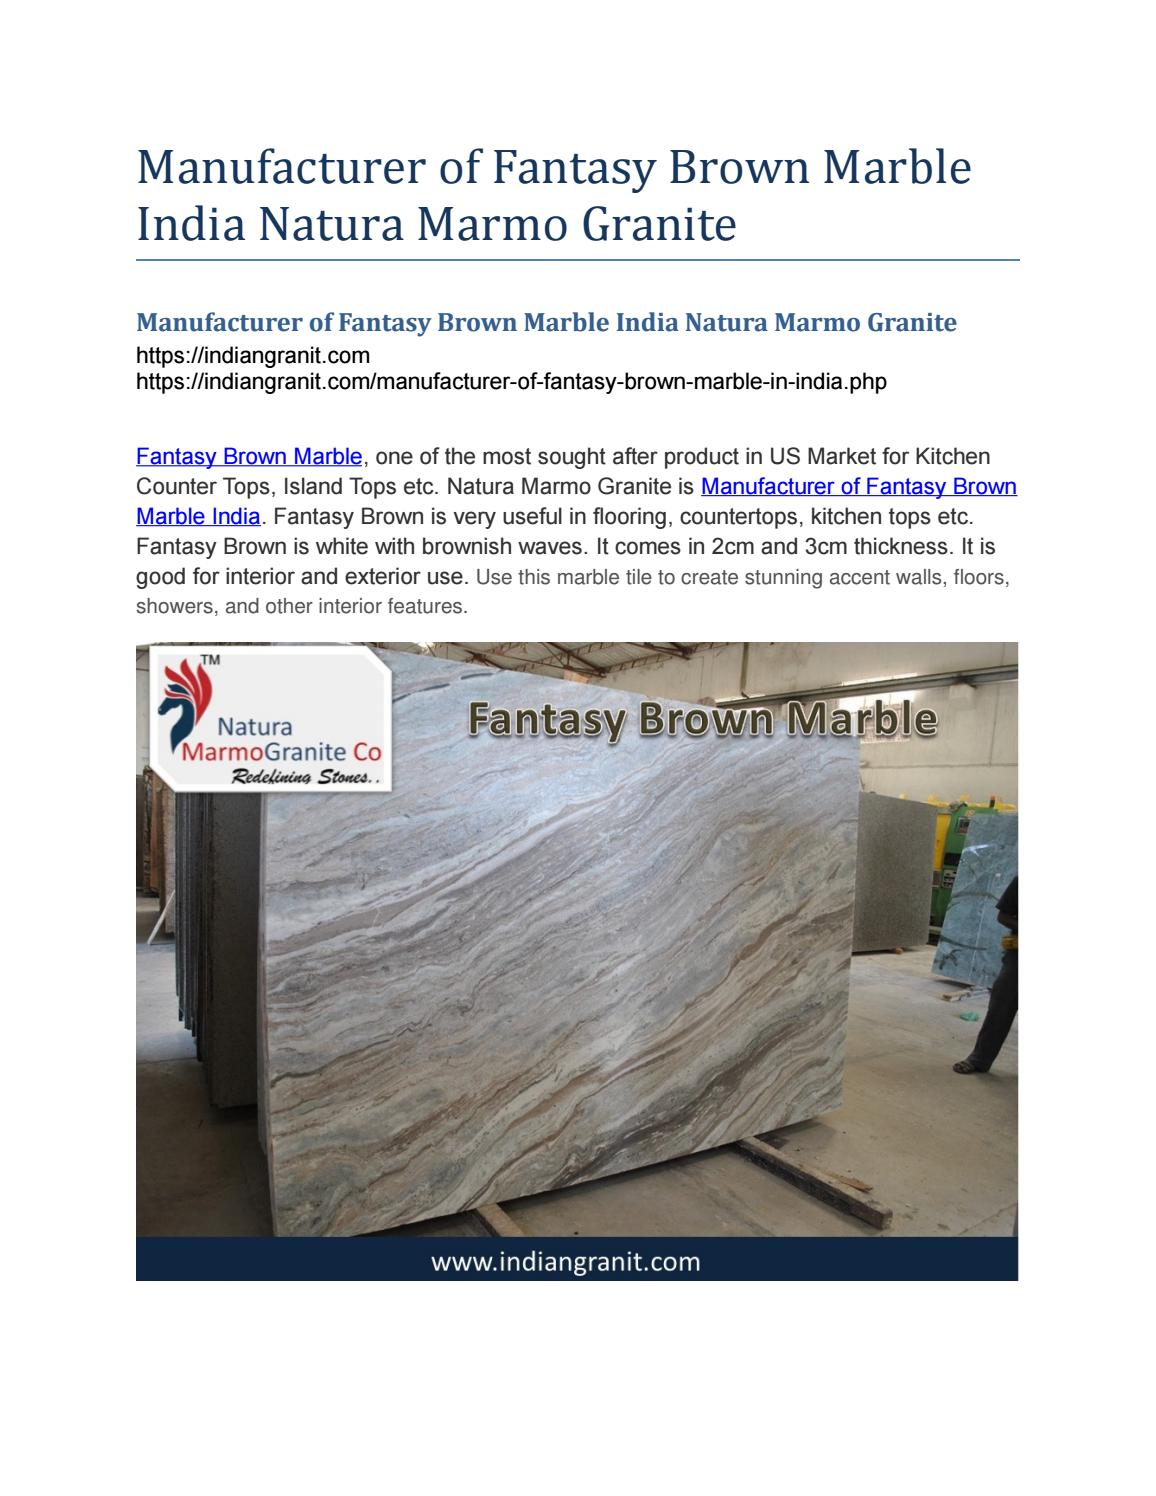 Manufacturer of Fantasy Brown Marble India Natura Marmo